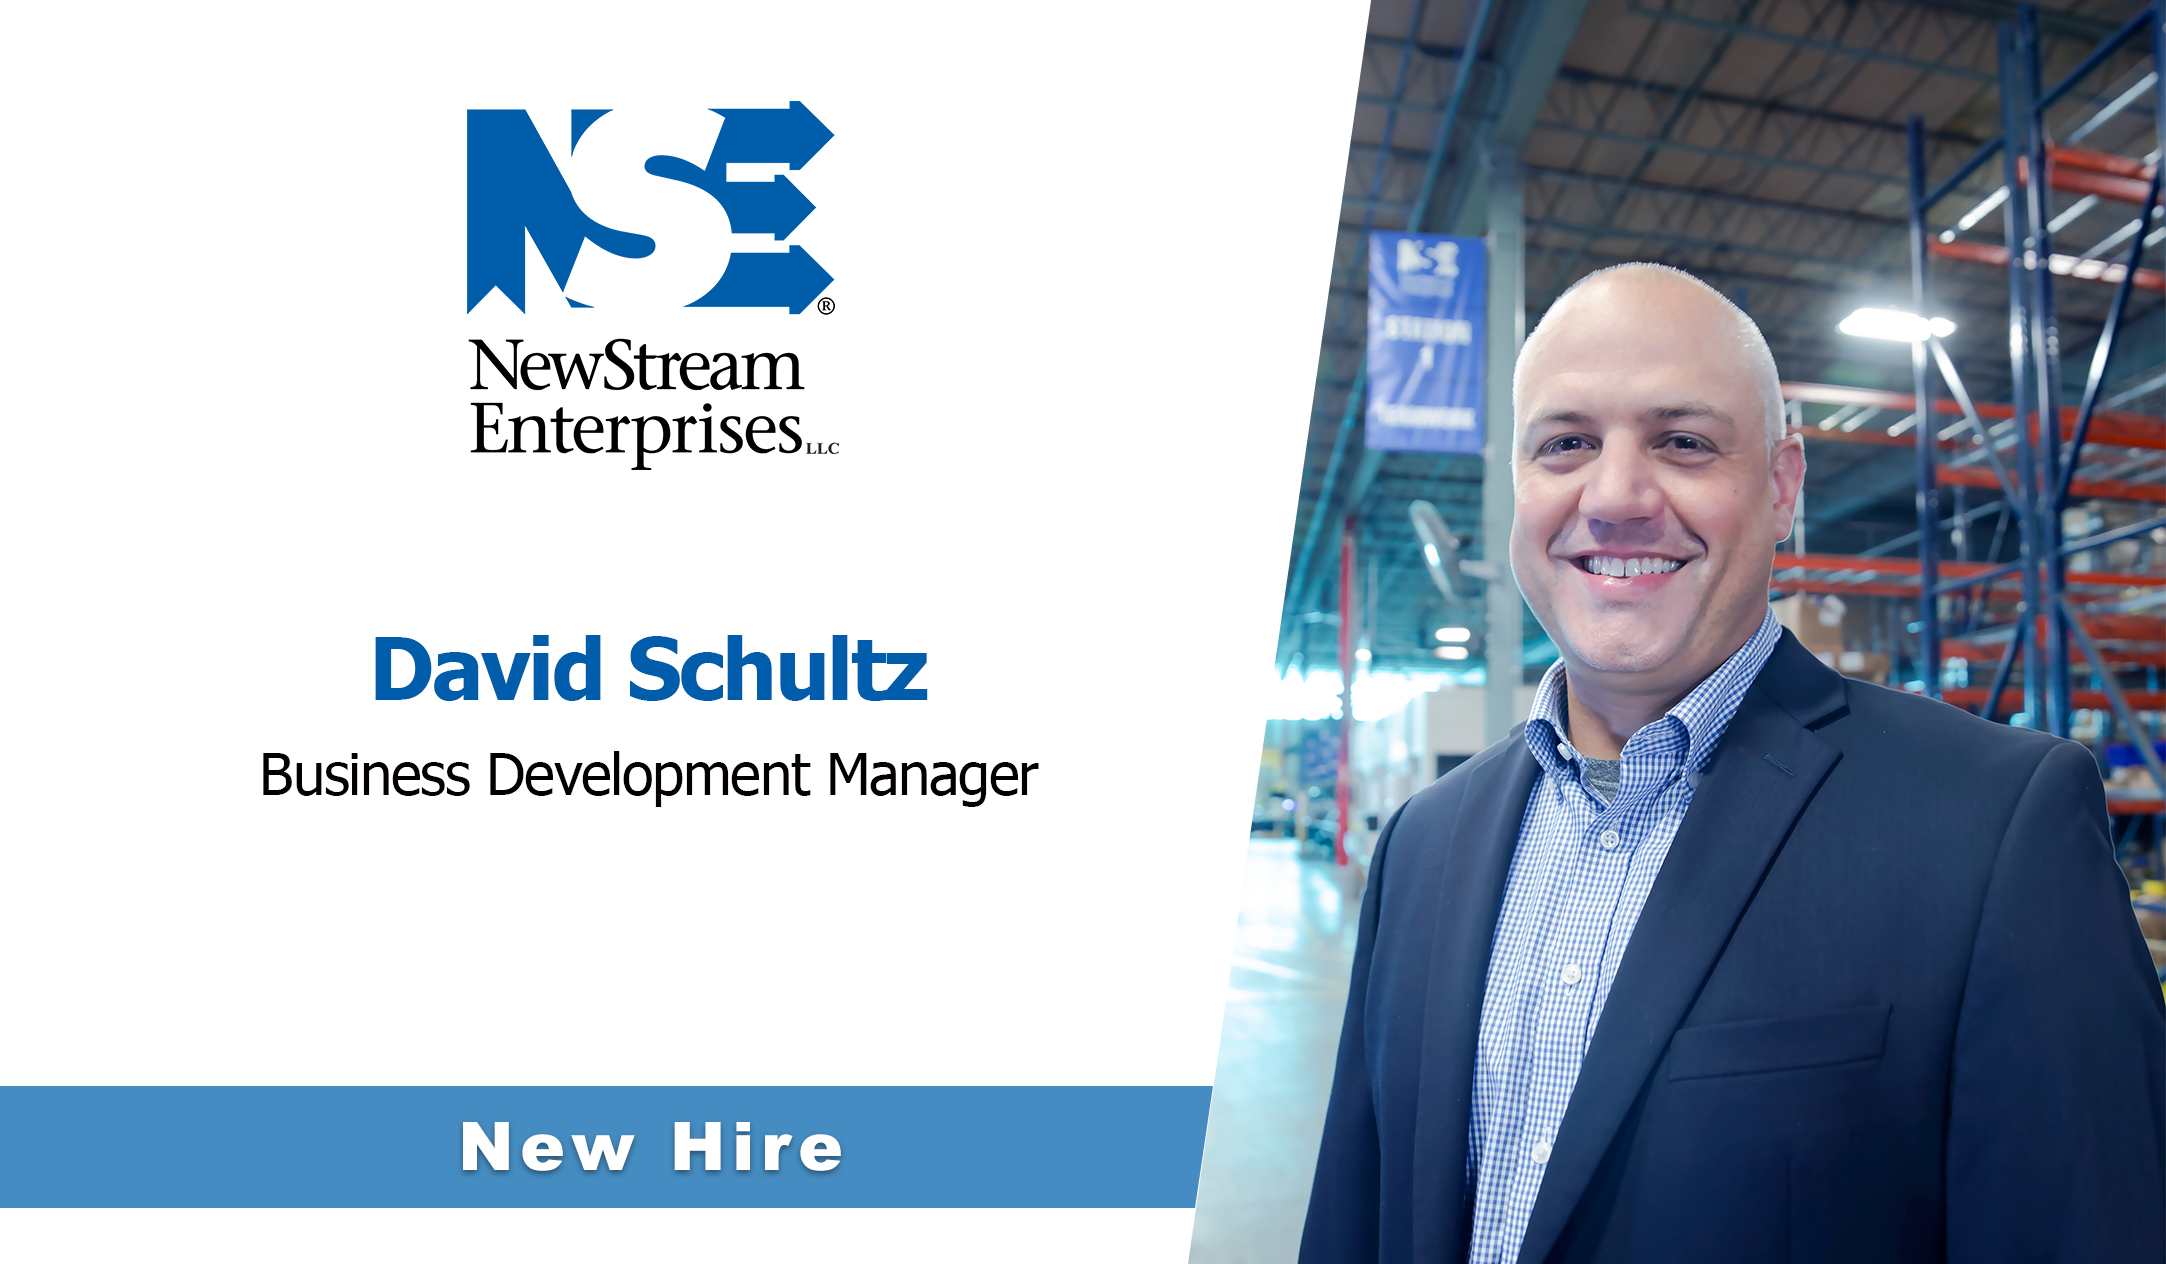 Business Development Manager-David Schultz